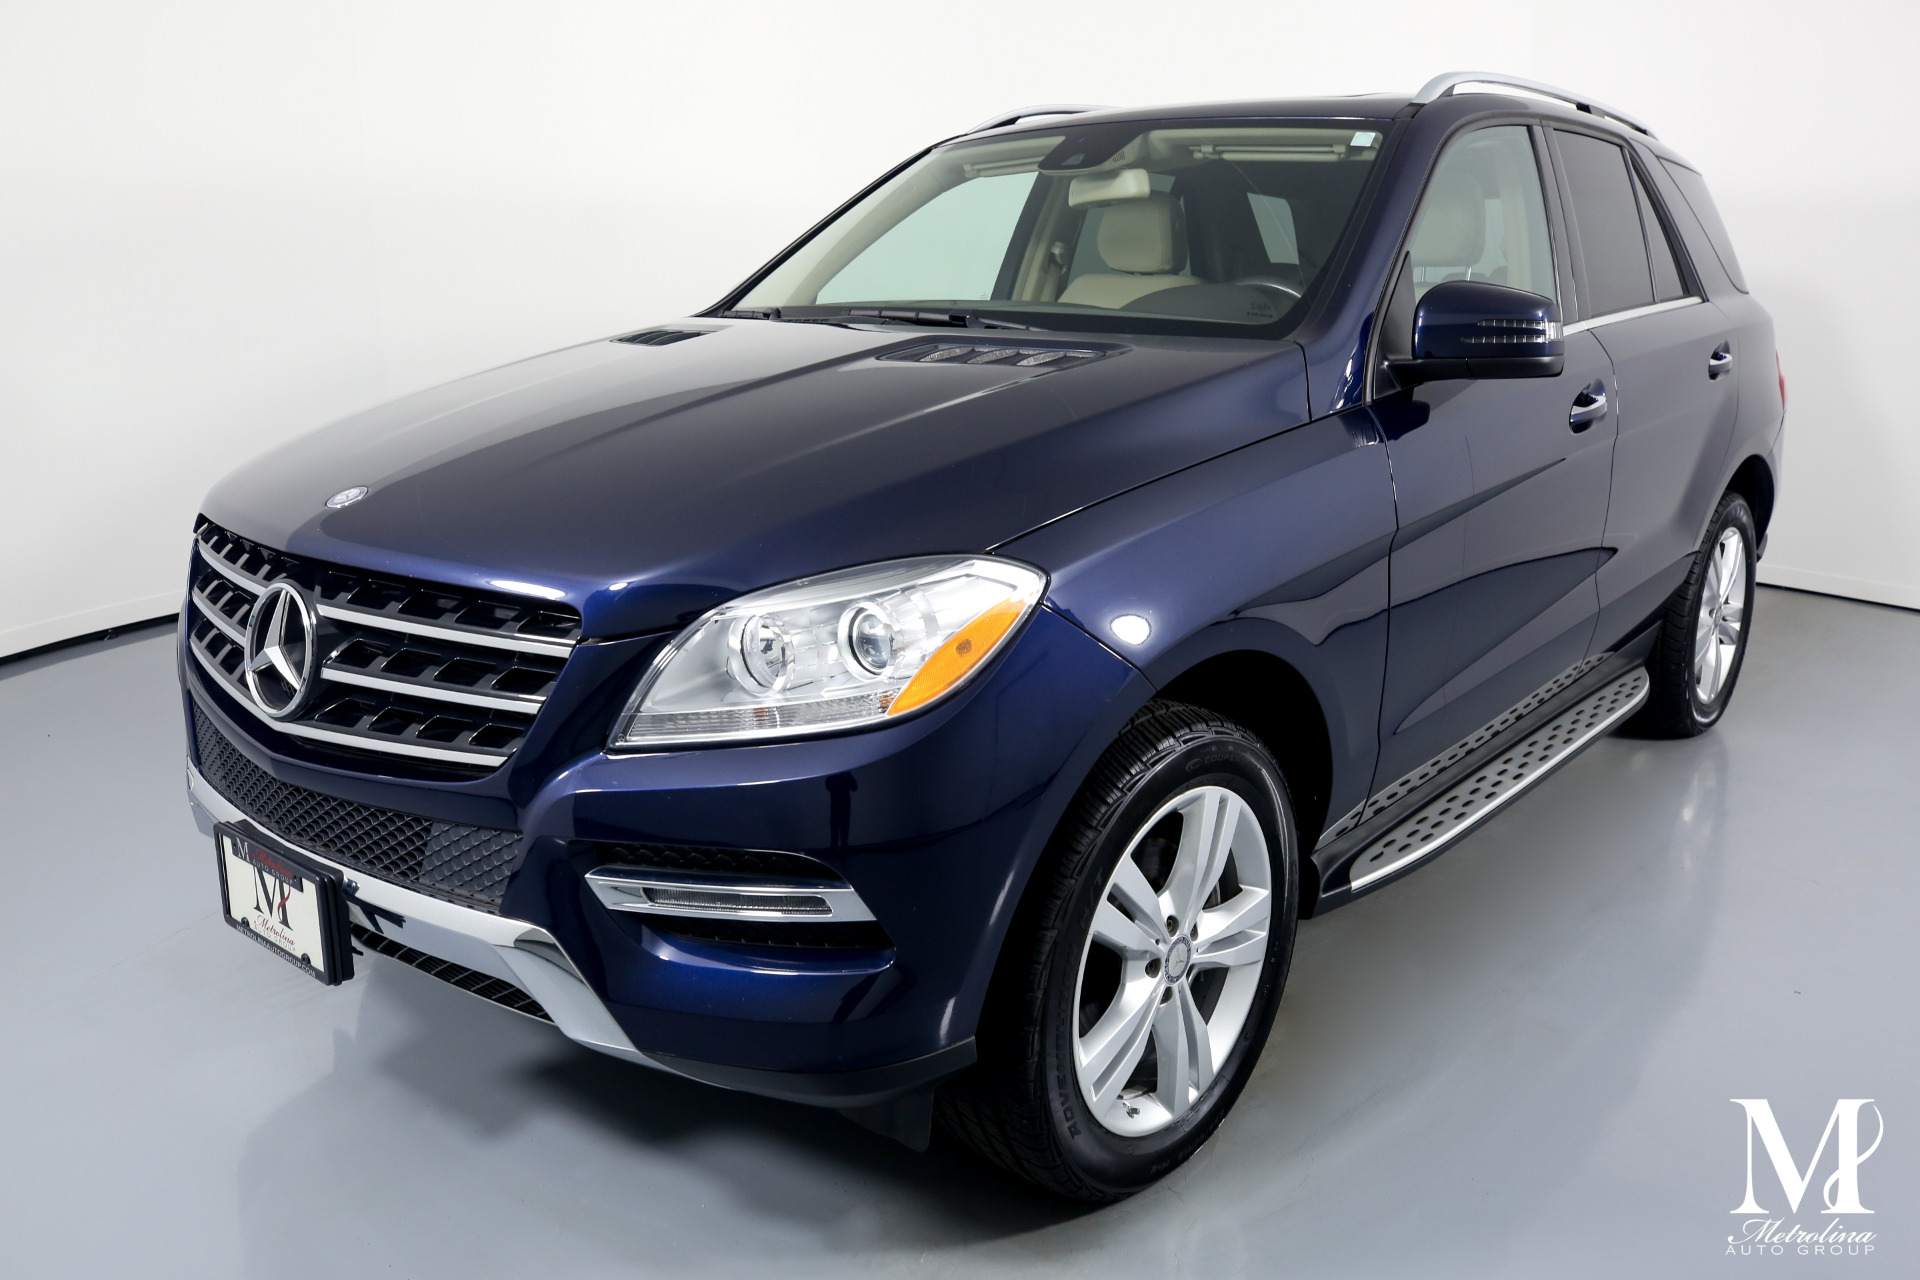 Used 2015 Mercedes-Benz M-Class ML 350 4MATIC for sale $24,996 at Metrolina Auto Group in Charlotte NC 28217 - 4